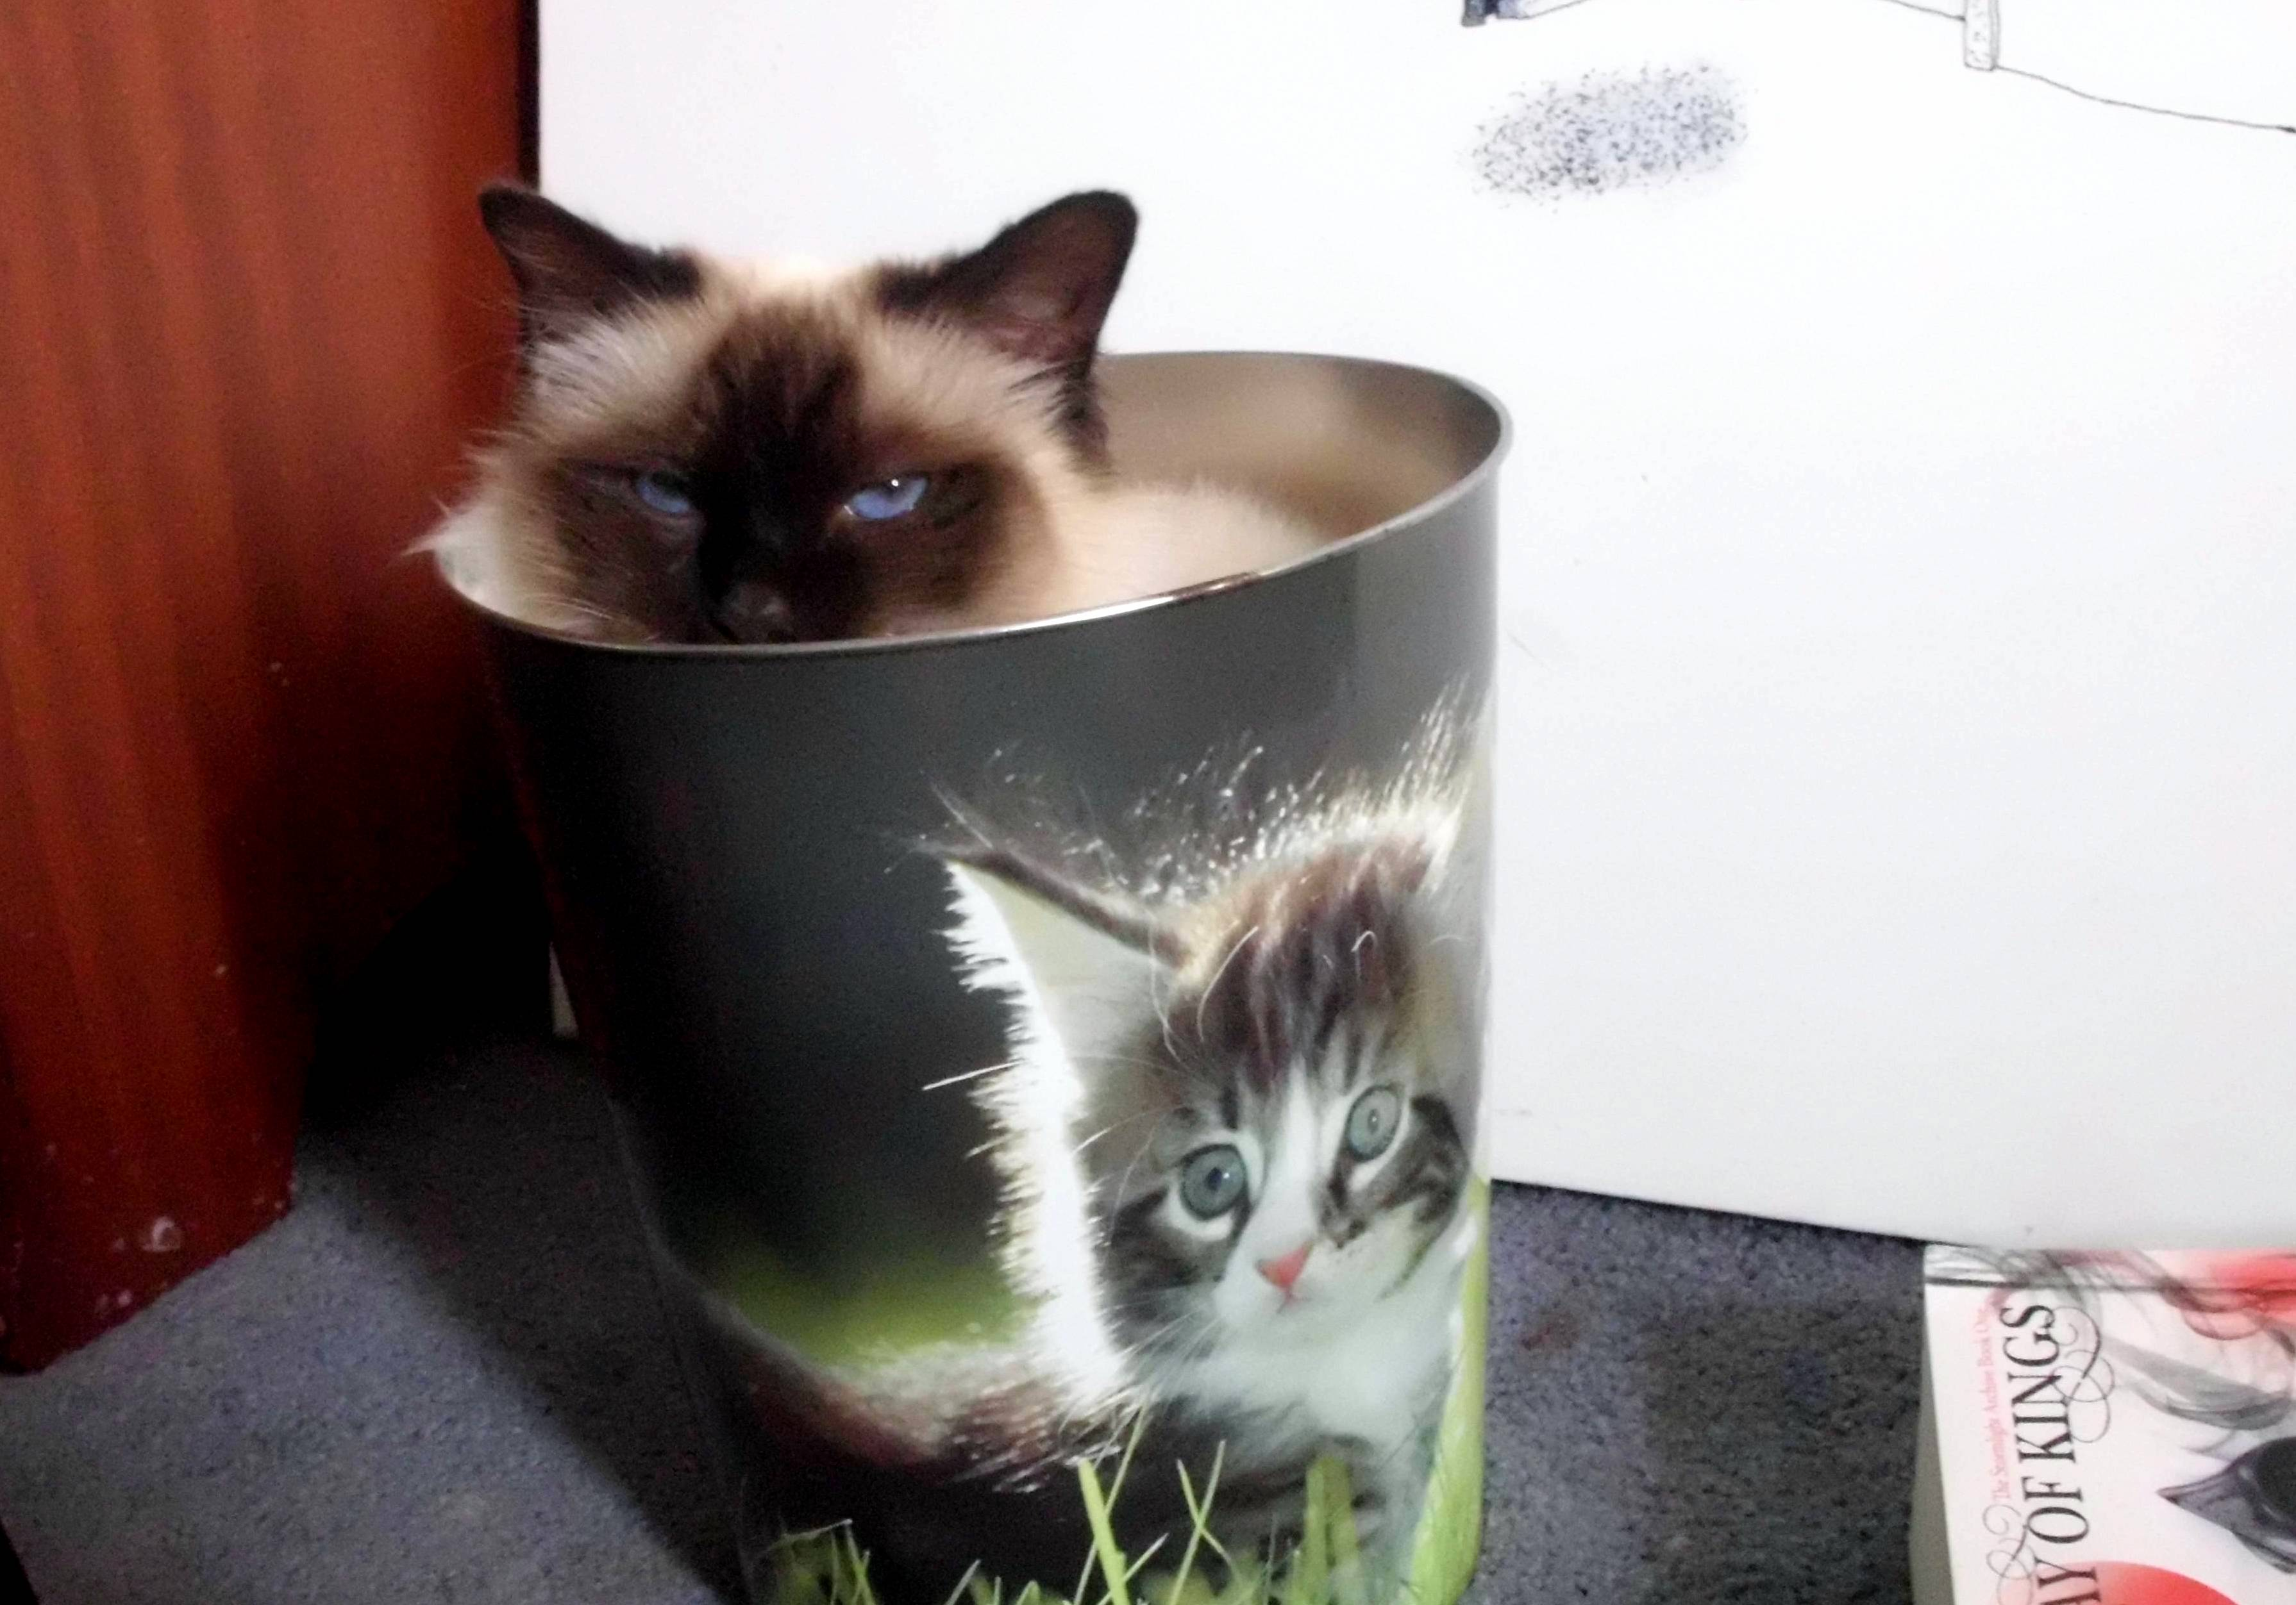 I bought myself a cat bin and knew this needed to be done